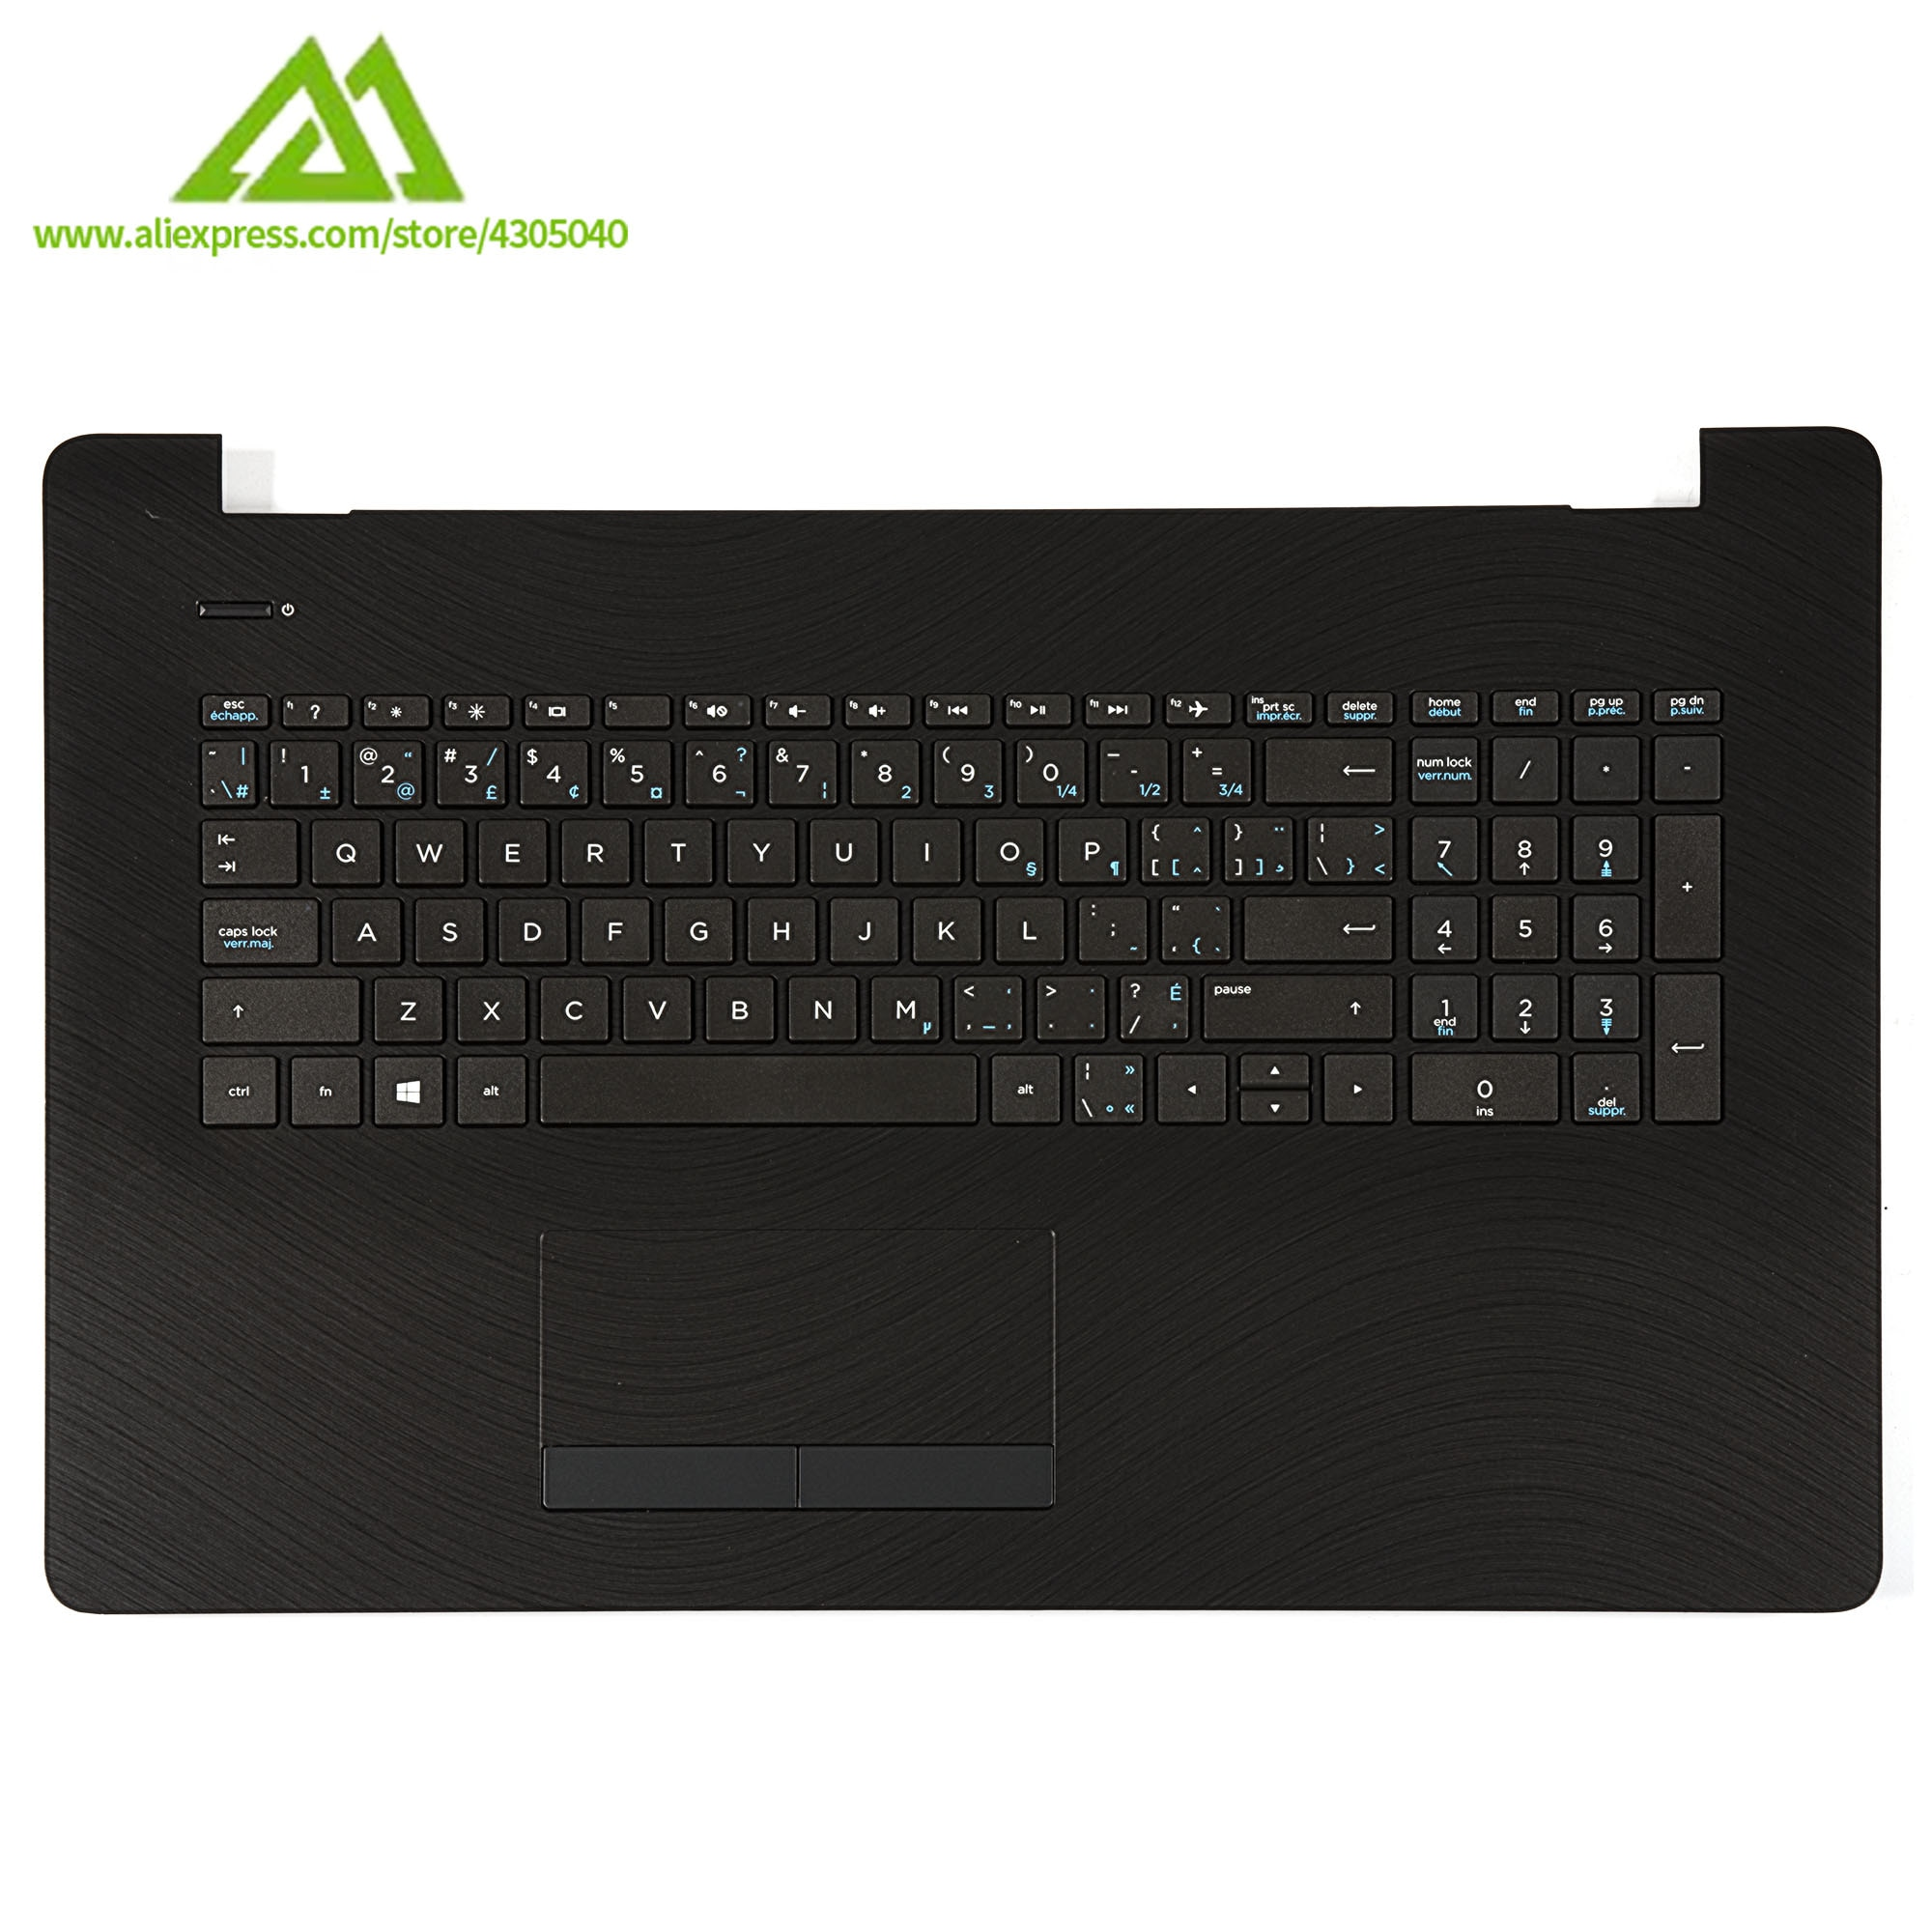 New Original Palmrest Keyboard Bezel With Keyboard For HP Pavilion 17-BS 17-AK 17-AY 17-BR Series 926560-001 C Cover